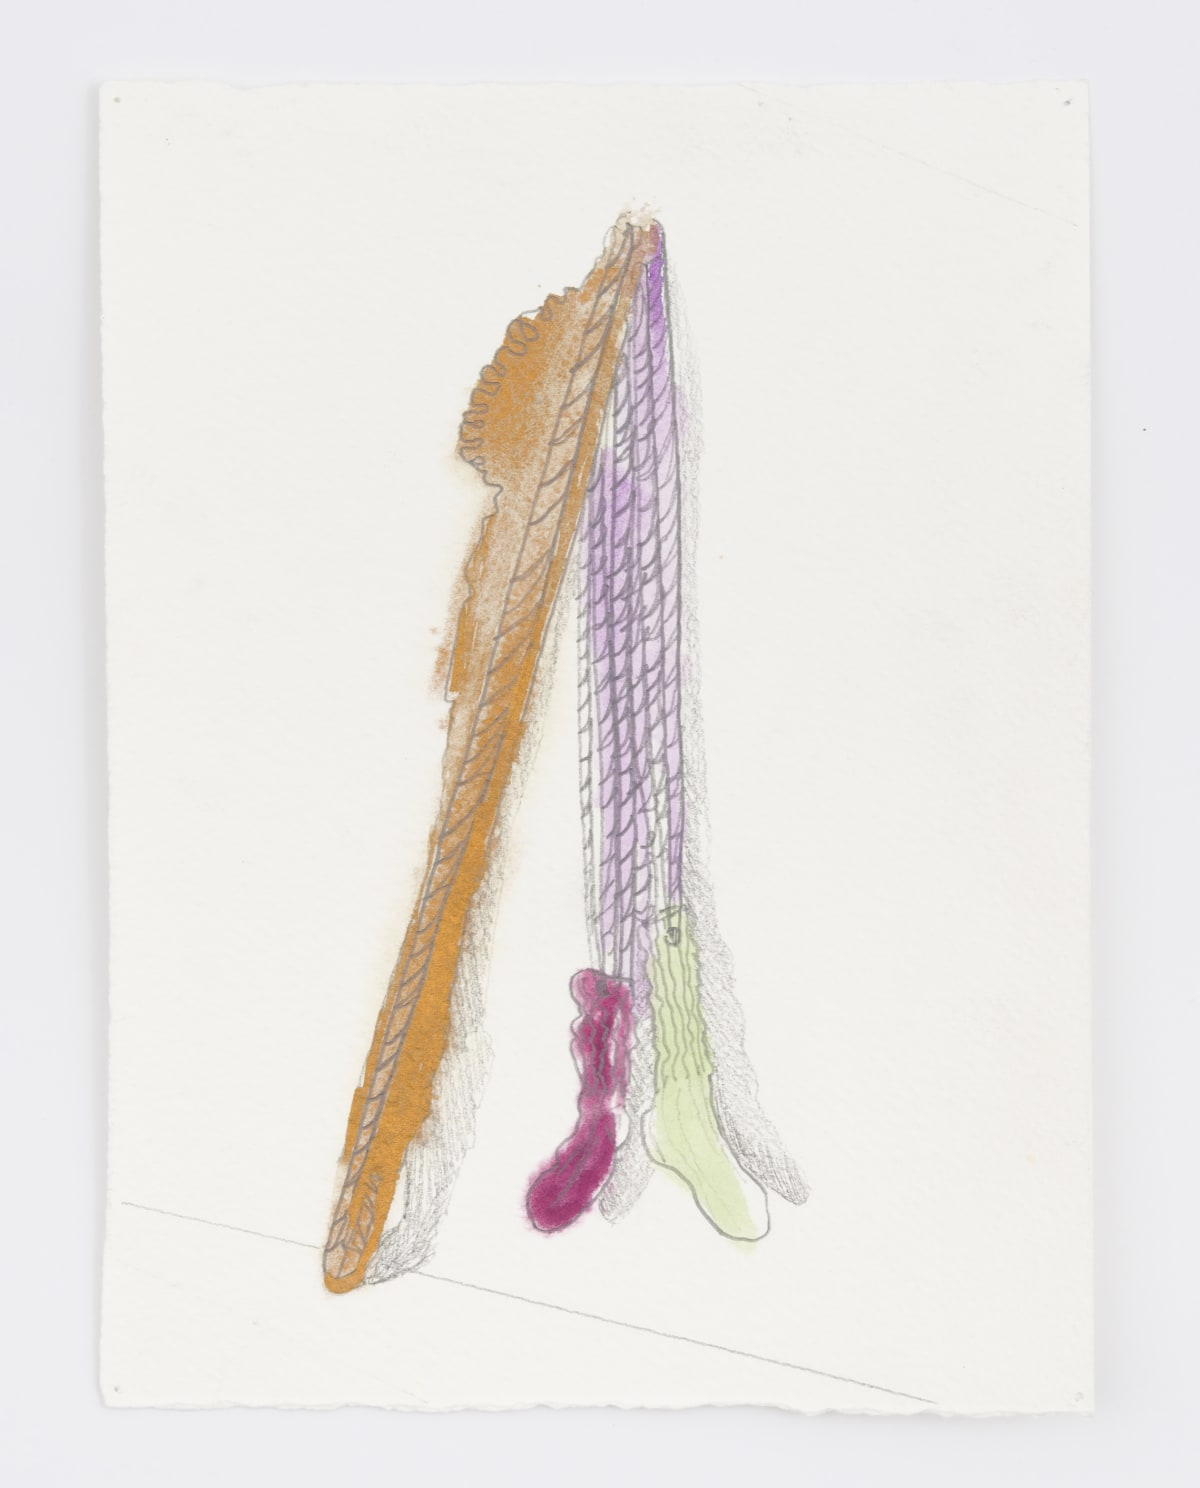 Katy Cowan, First Sketch for Wheels and Scales and Spray Rope (Walking Position), 2017